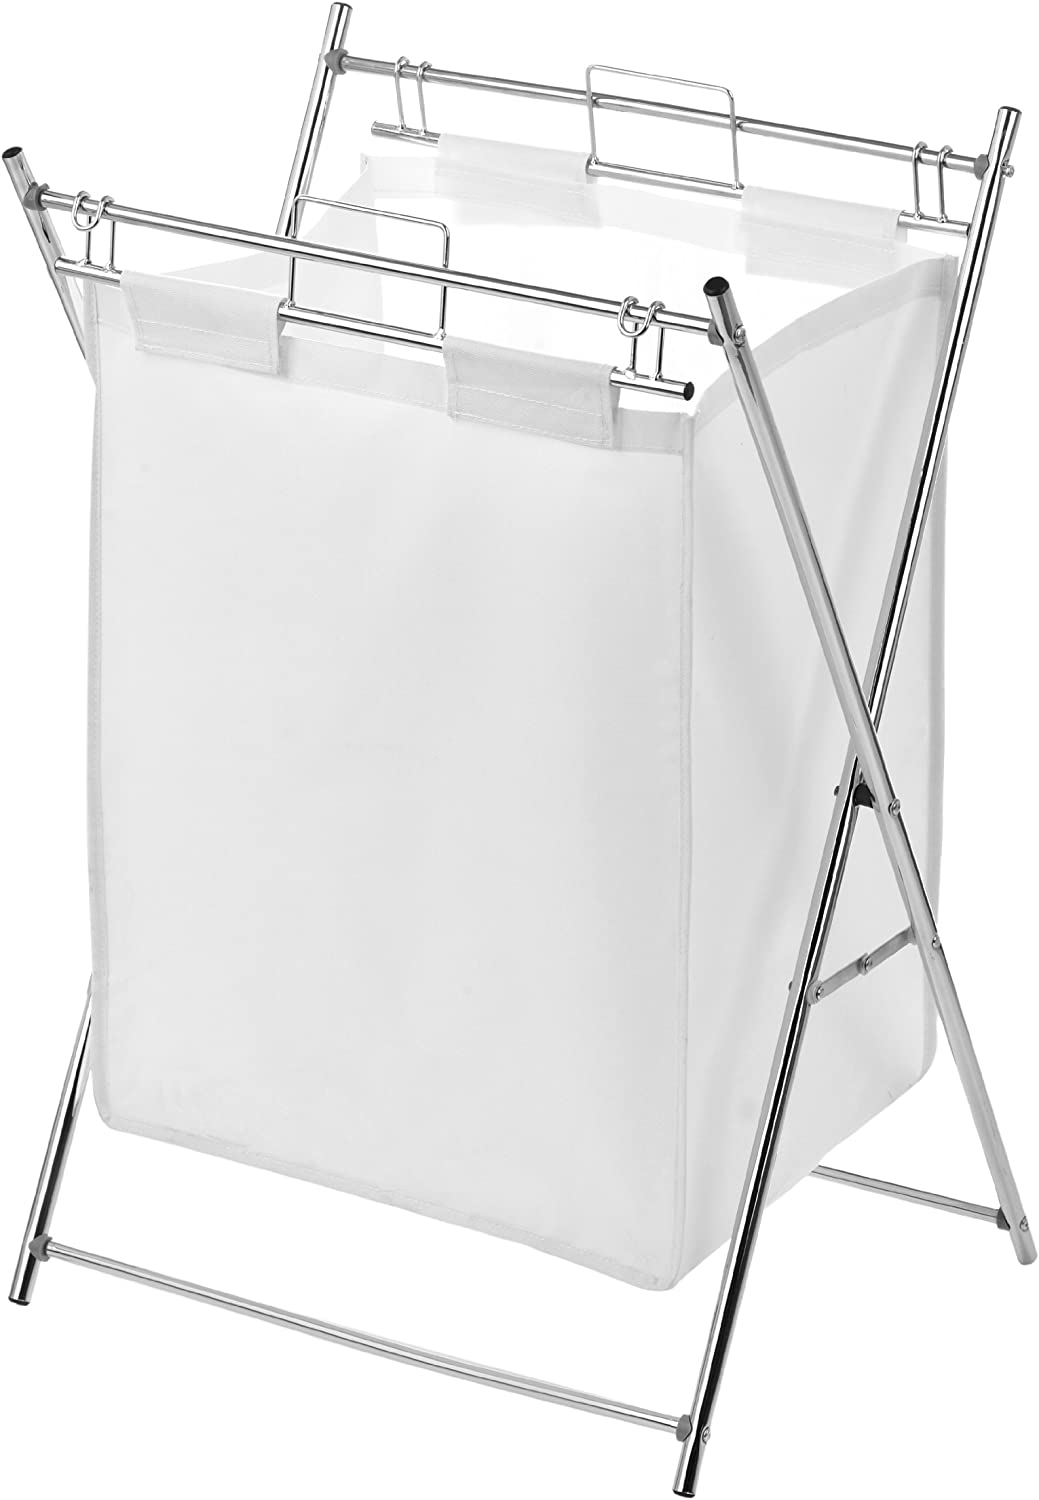 Sales of SALE items from new works Premier Housewares At the price of surprise Laundry Bag with Frame White Chrome -